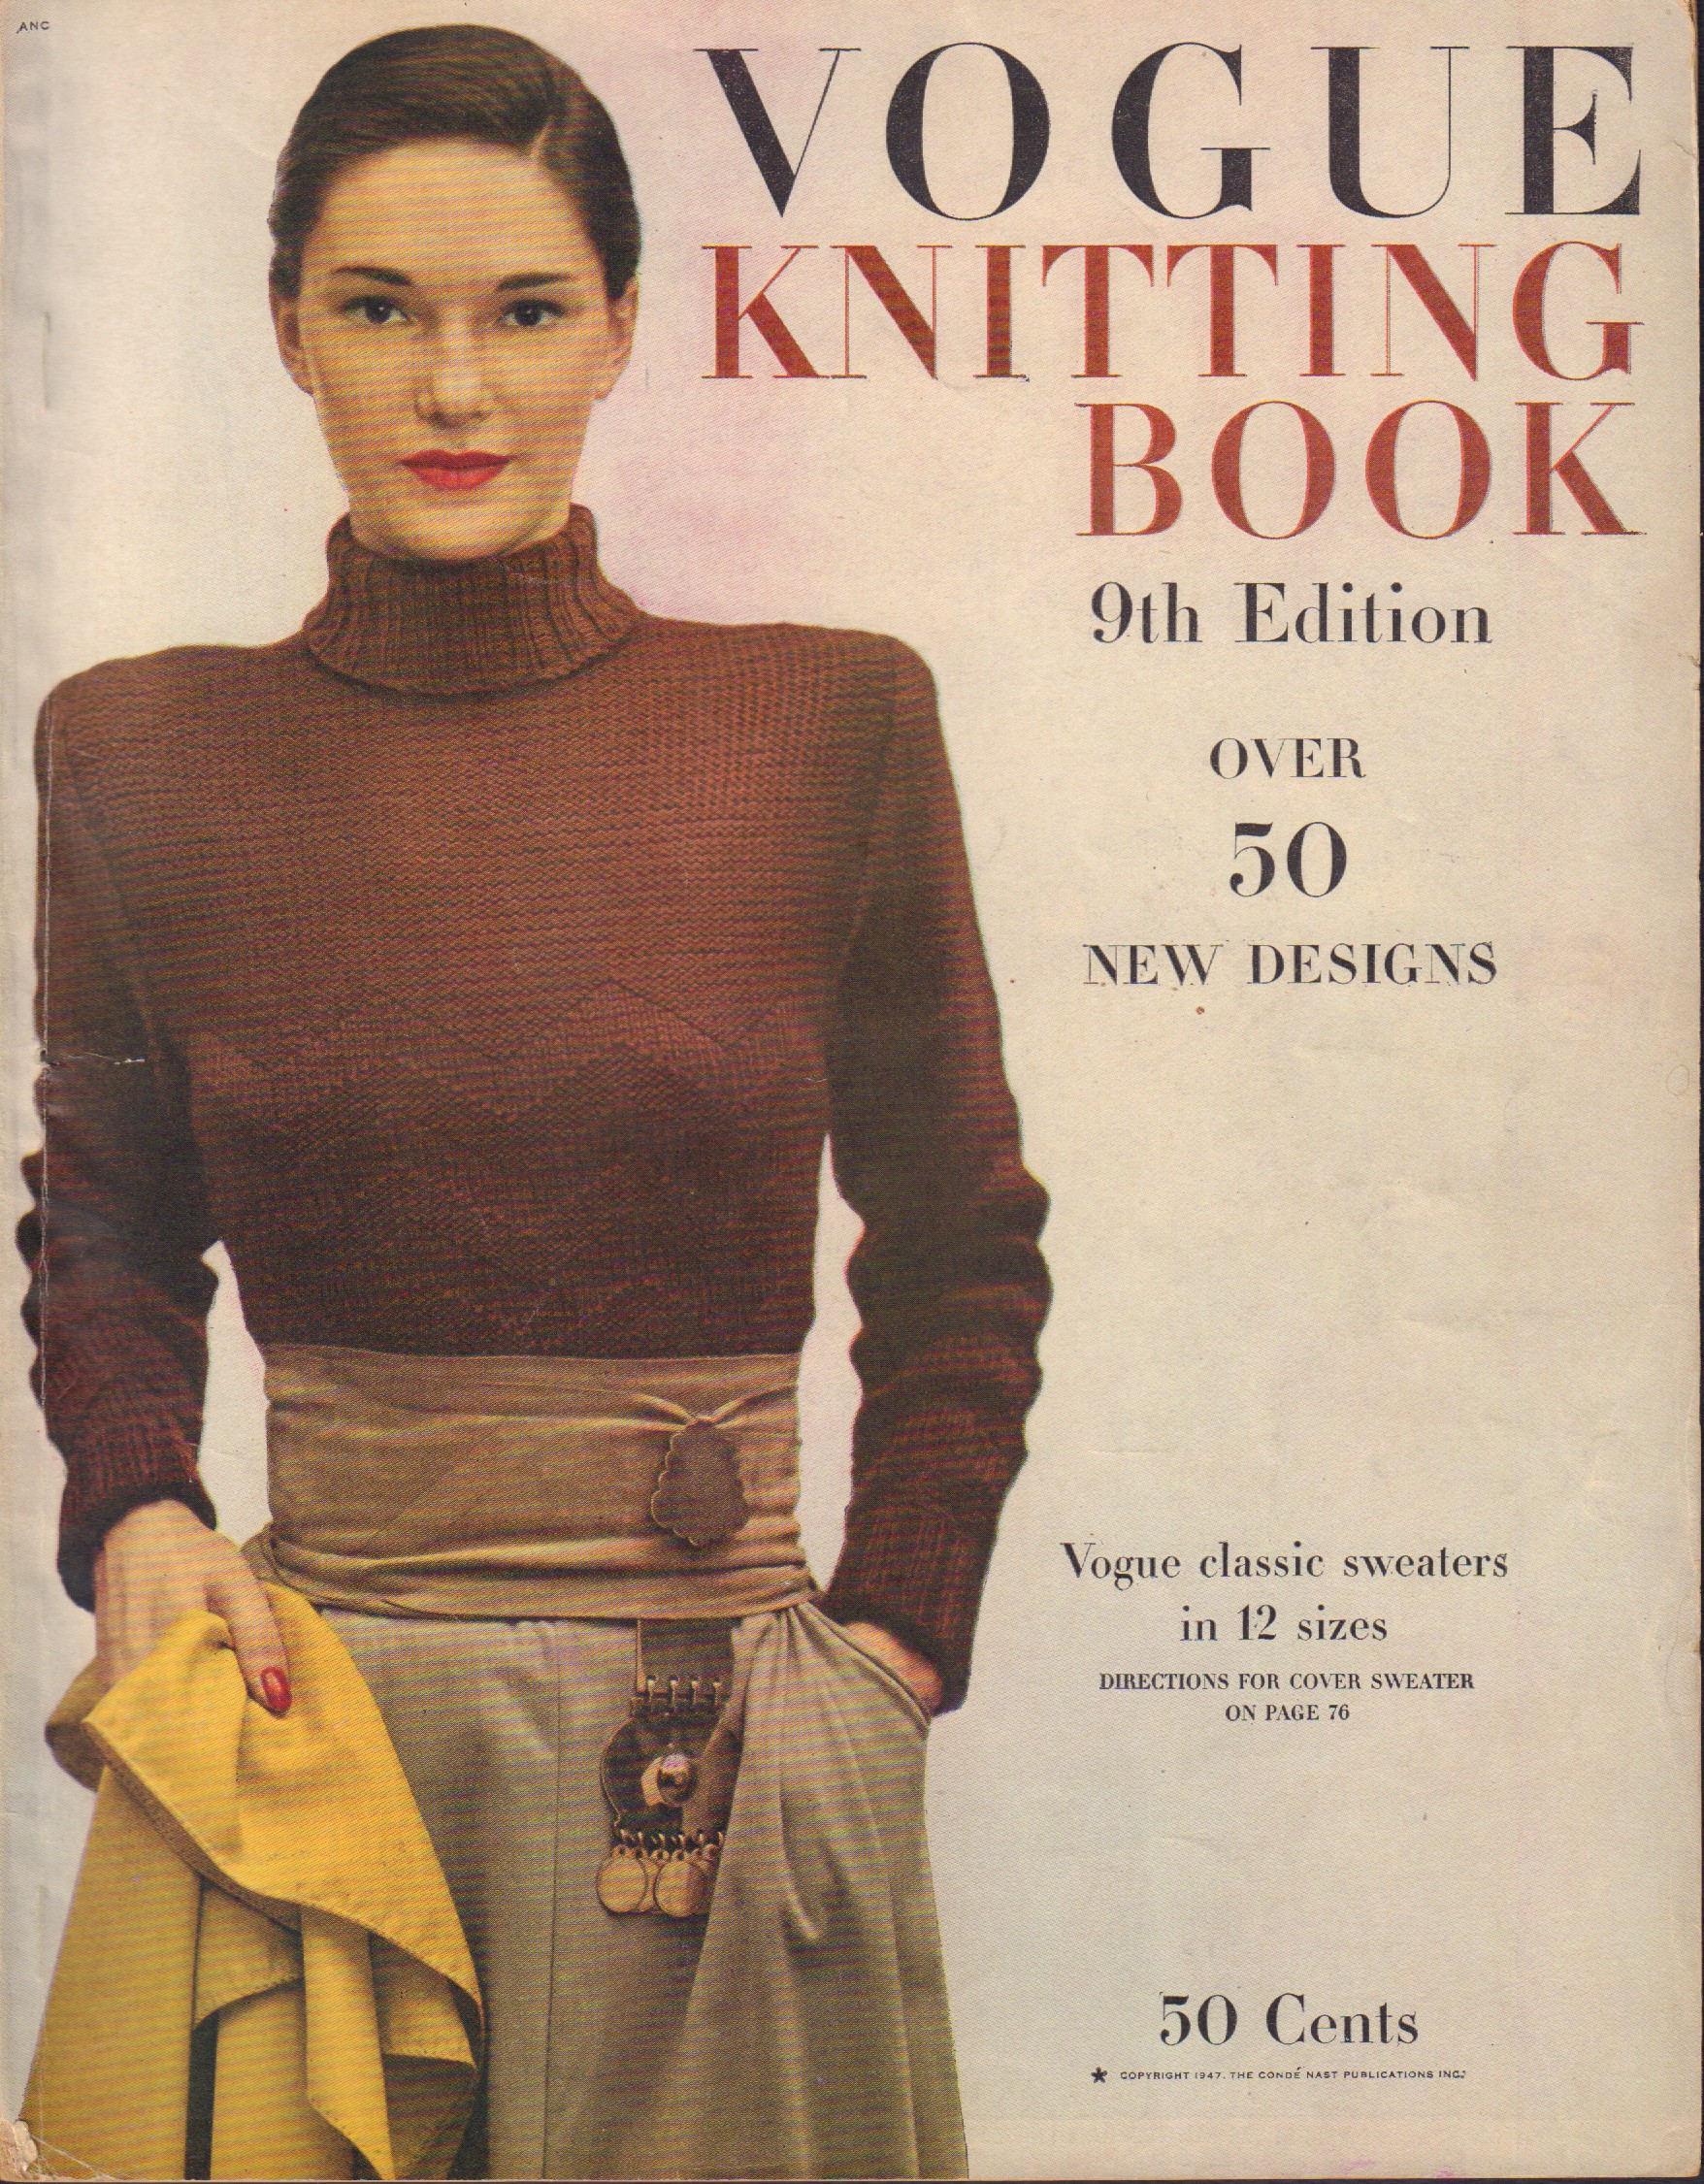 Image for Vogue Knitting Book 9th Edition 1947